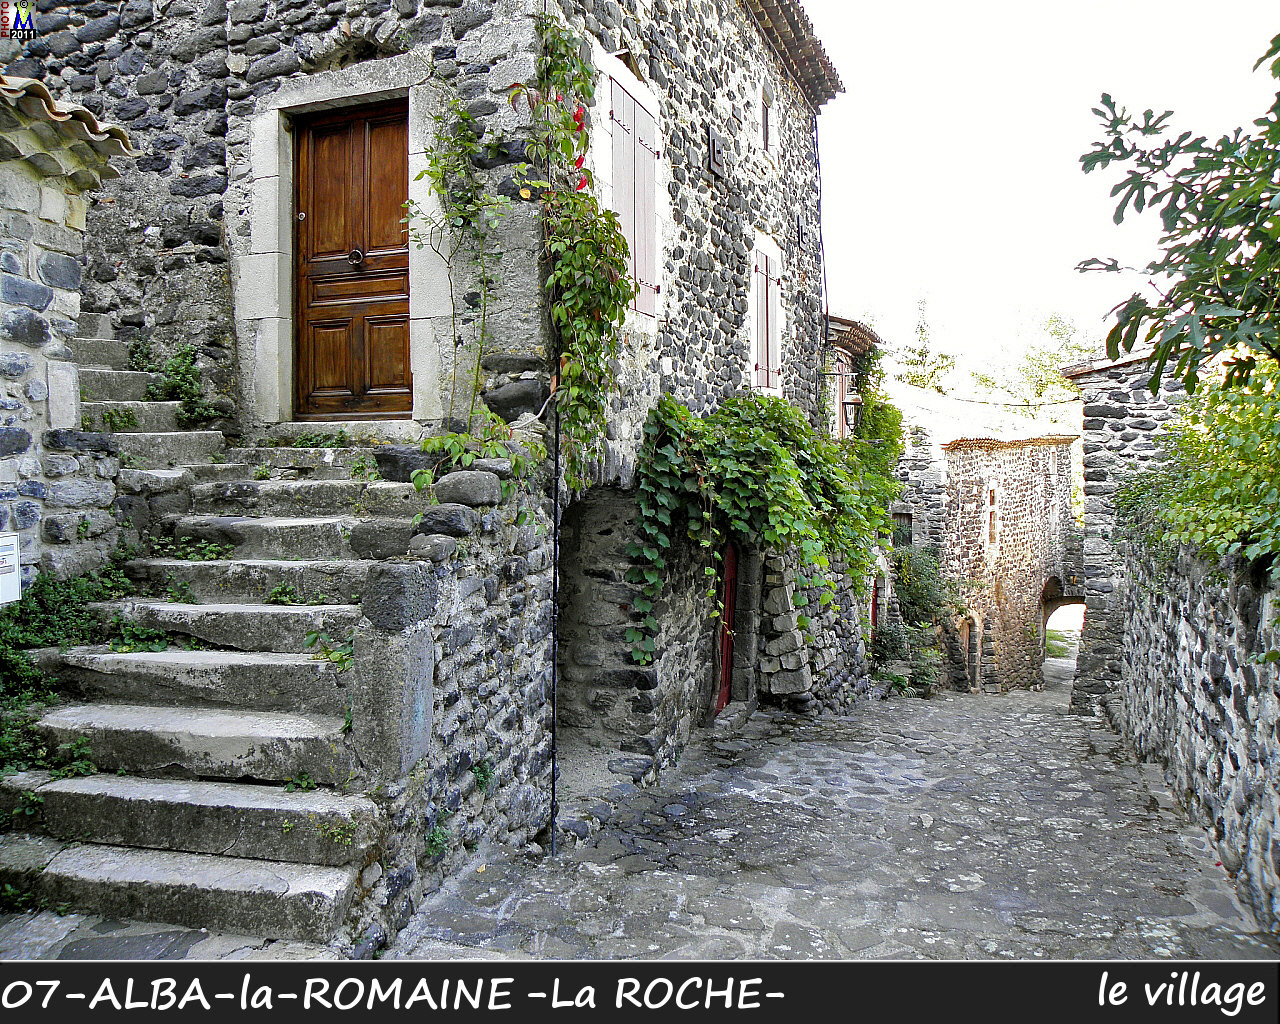 07ALBA-ROMAINEzROCHE_village_112.jpg